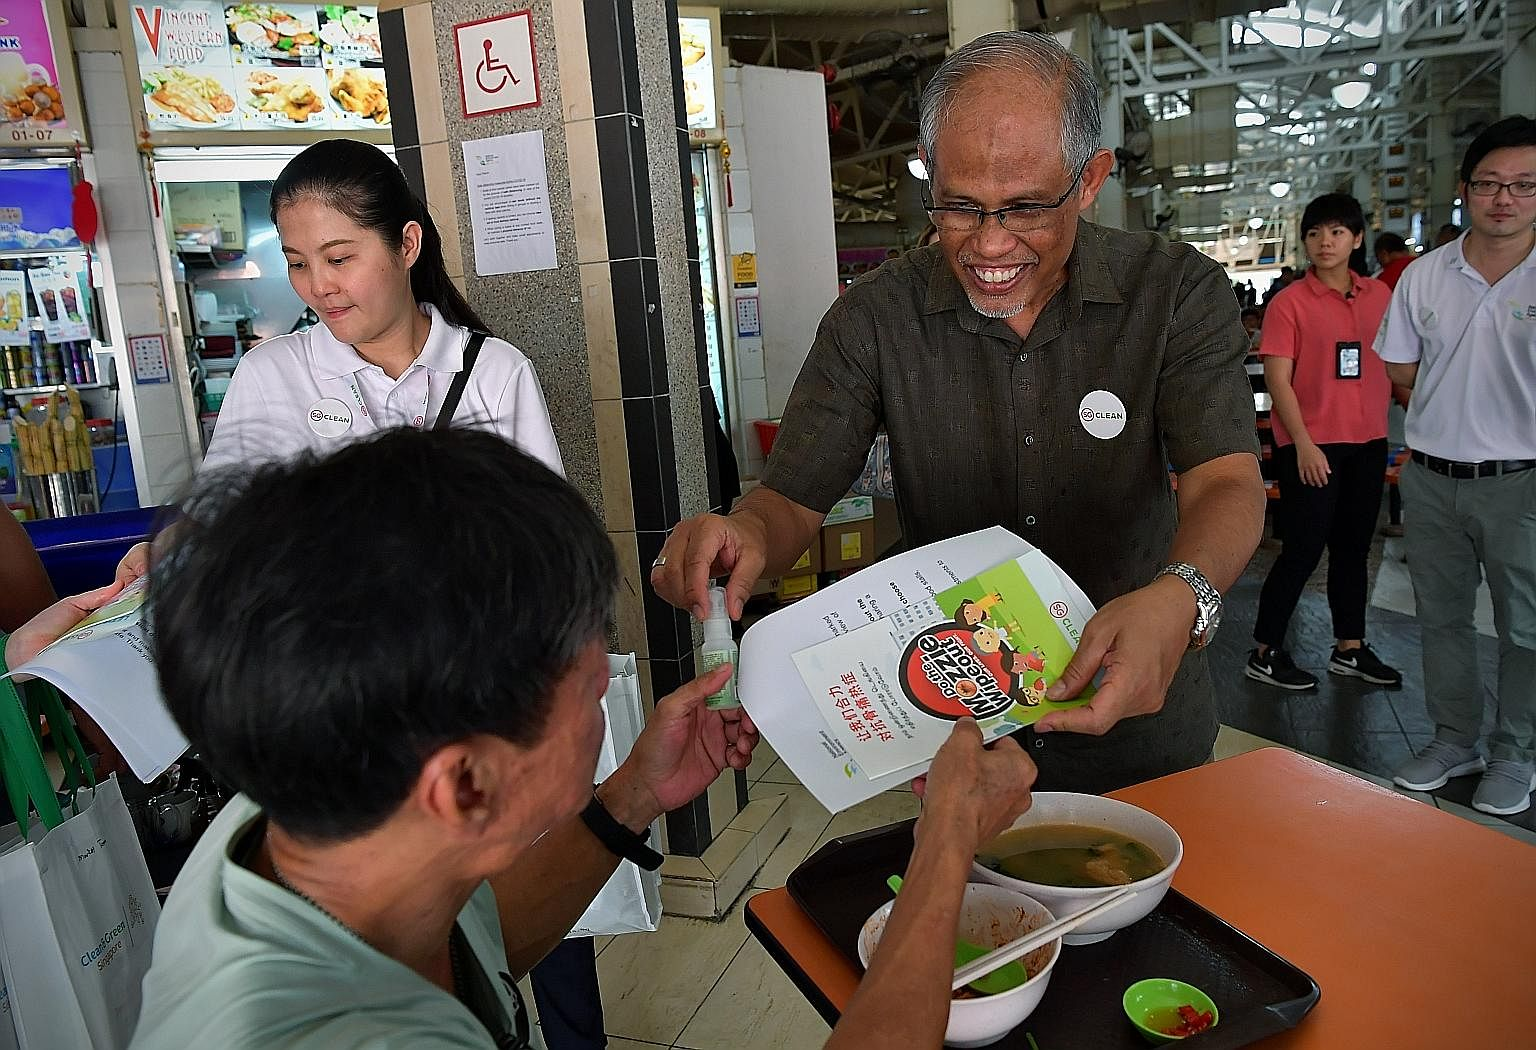 Environment and Water Resources Minister Masagos Zulkifli giving out mosquito repellents and information booklets at the launch of the National Dengue Prevention Campaign in Ang Mo Kio yesterday.